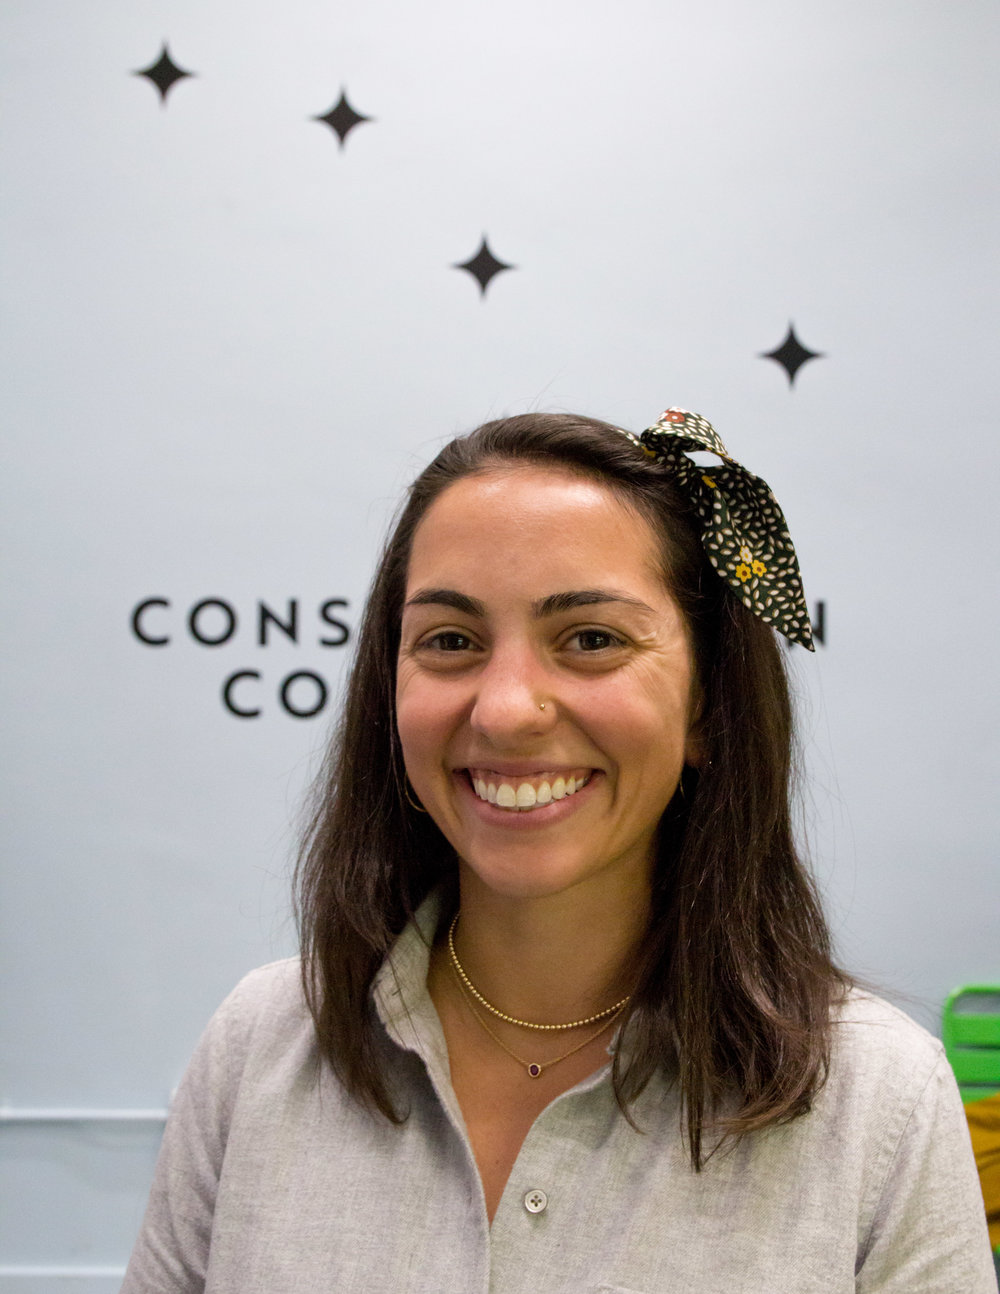 Danielle Butbul - Director of Community OutreachMy favorite thing about Ann Arbor is that there so many great community events throughout the year and equal opportunities to take-part in the them. My personal favorite is FestiFools.If I had to eat one food for the rest of my life it would be ripe heirloom tomatoes.I'm a Sagittarius.A fun fact about me is that I'm a Registered Dietitian and over the years I've had the chance to work at many food institutions in town -- Juicy Kitchen, Cafe Verde and The Brinery to name a few!